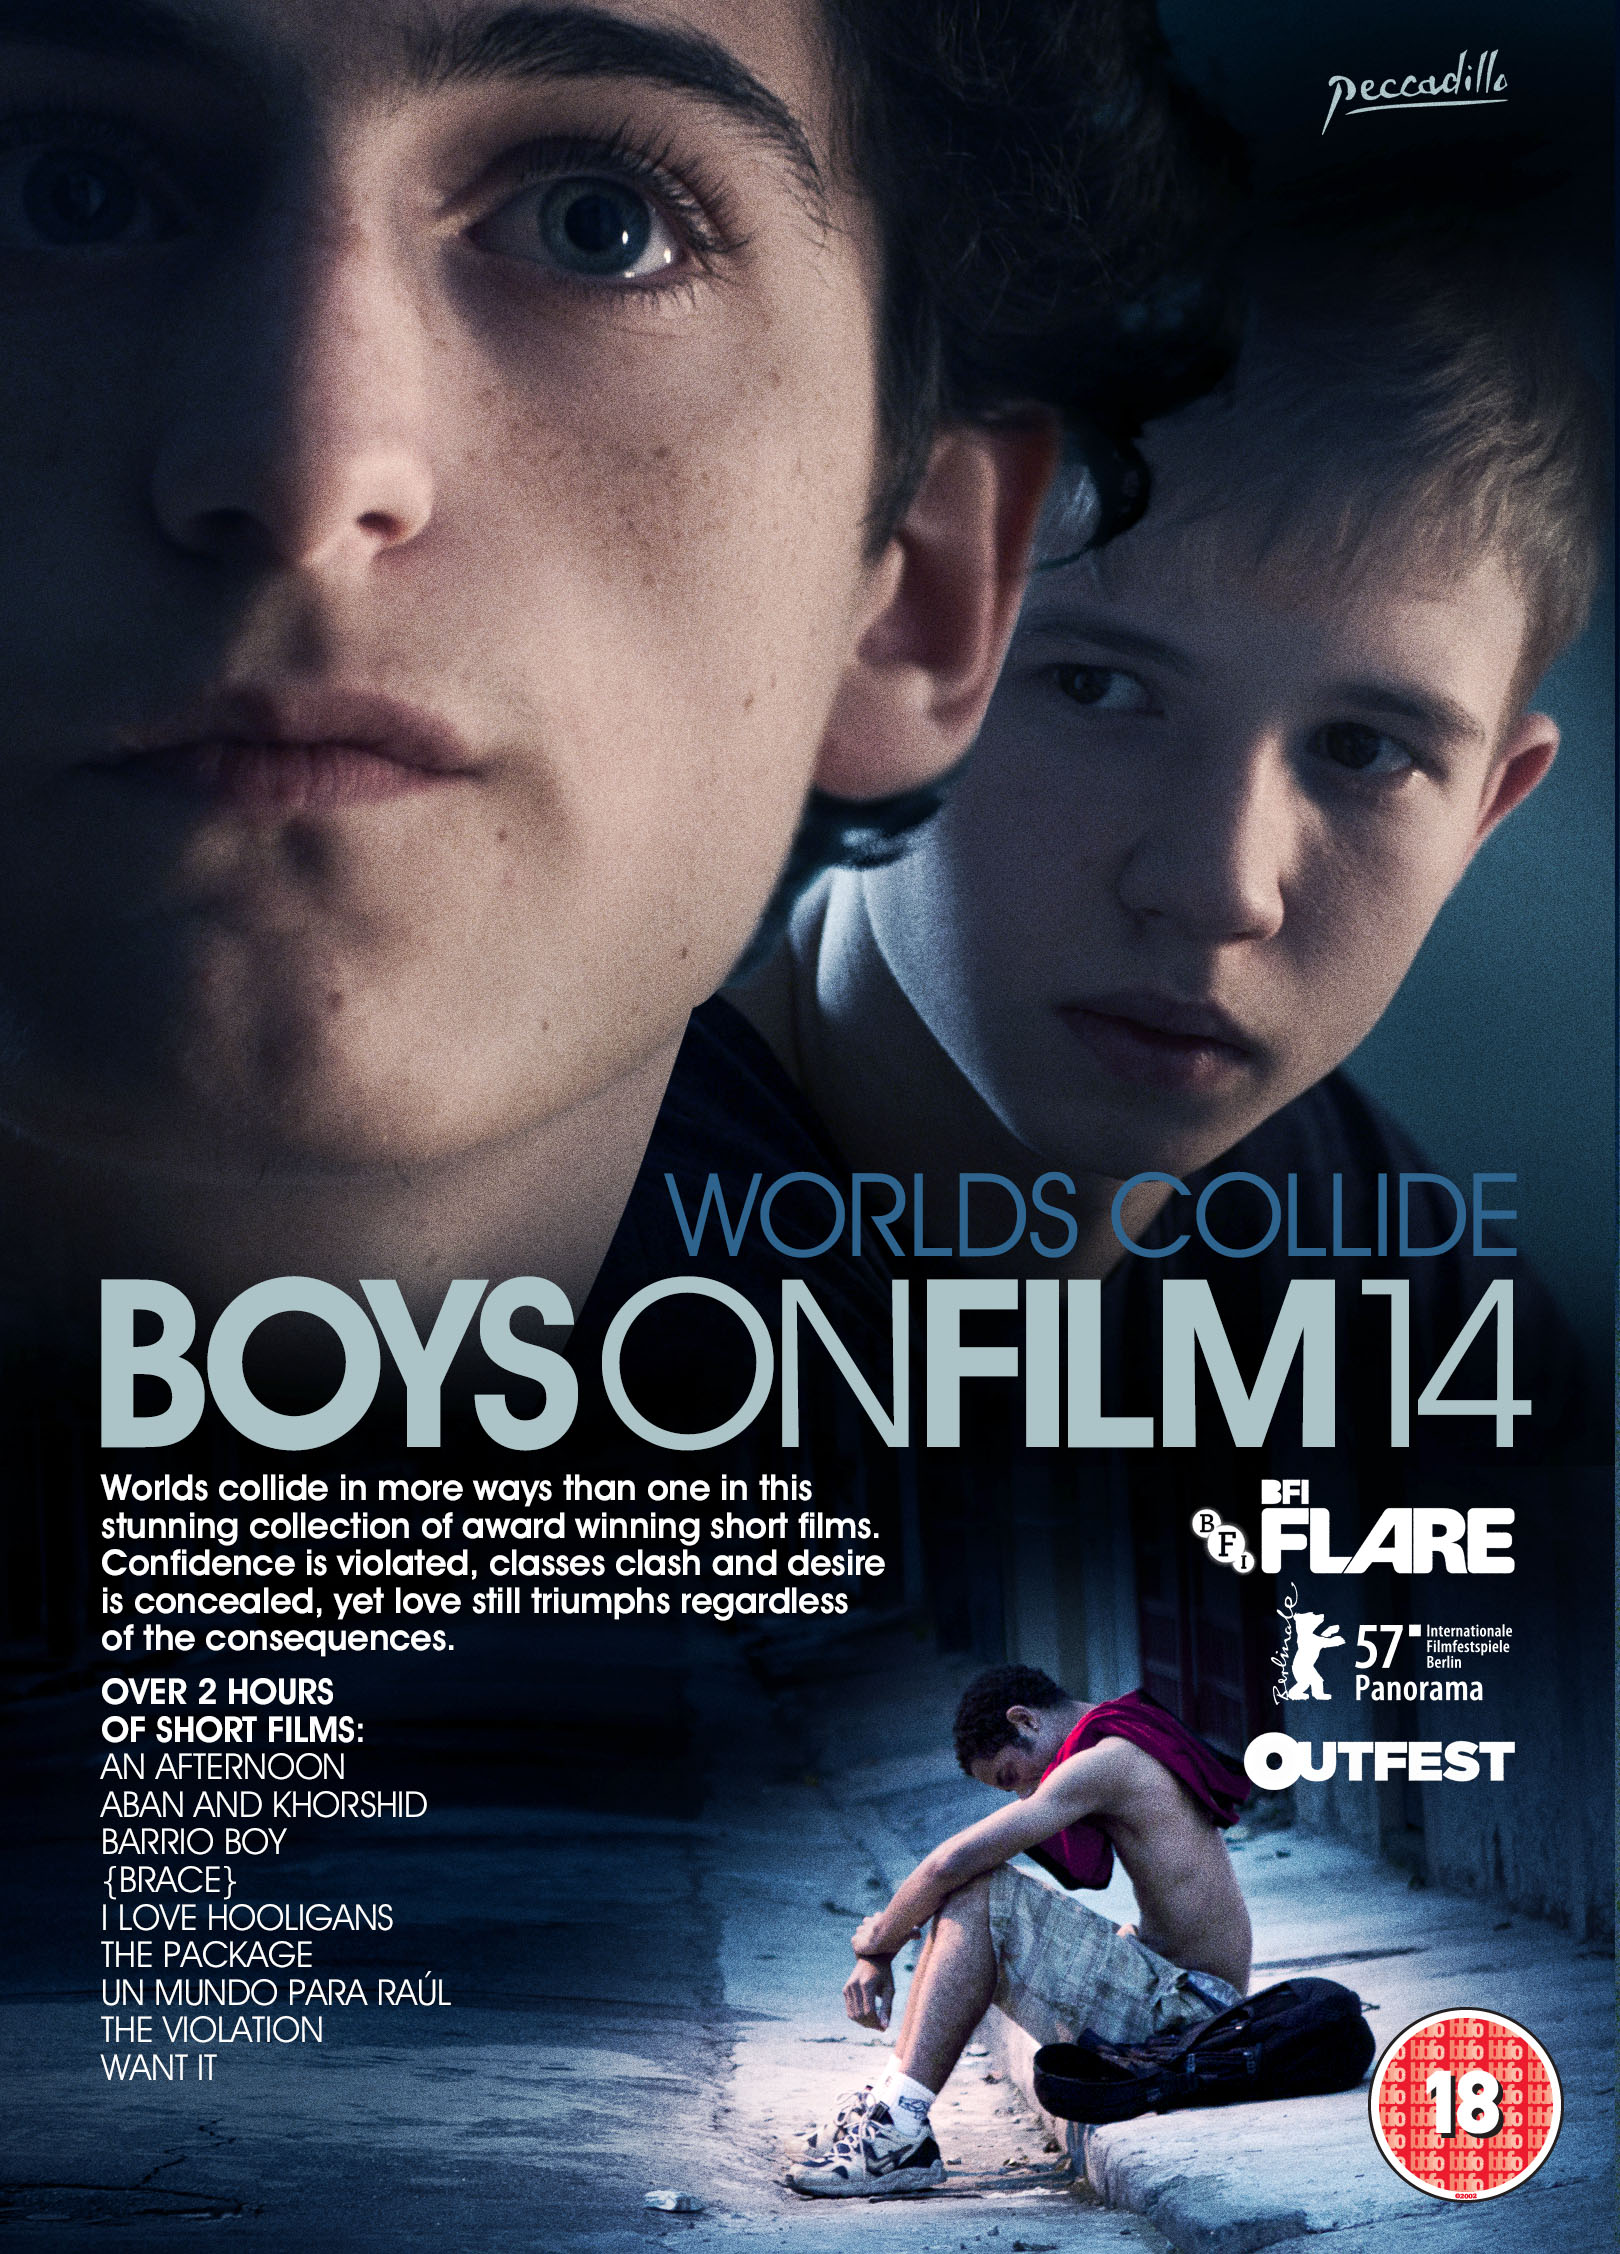 Boys on Film 14